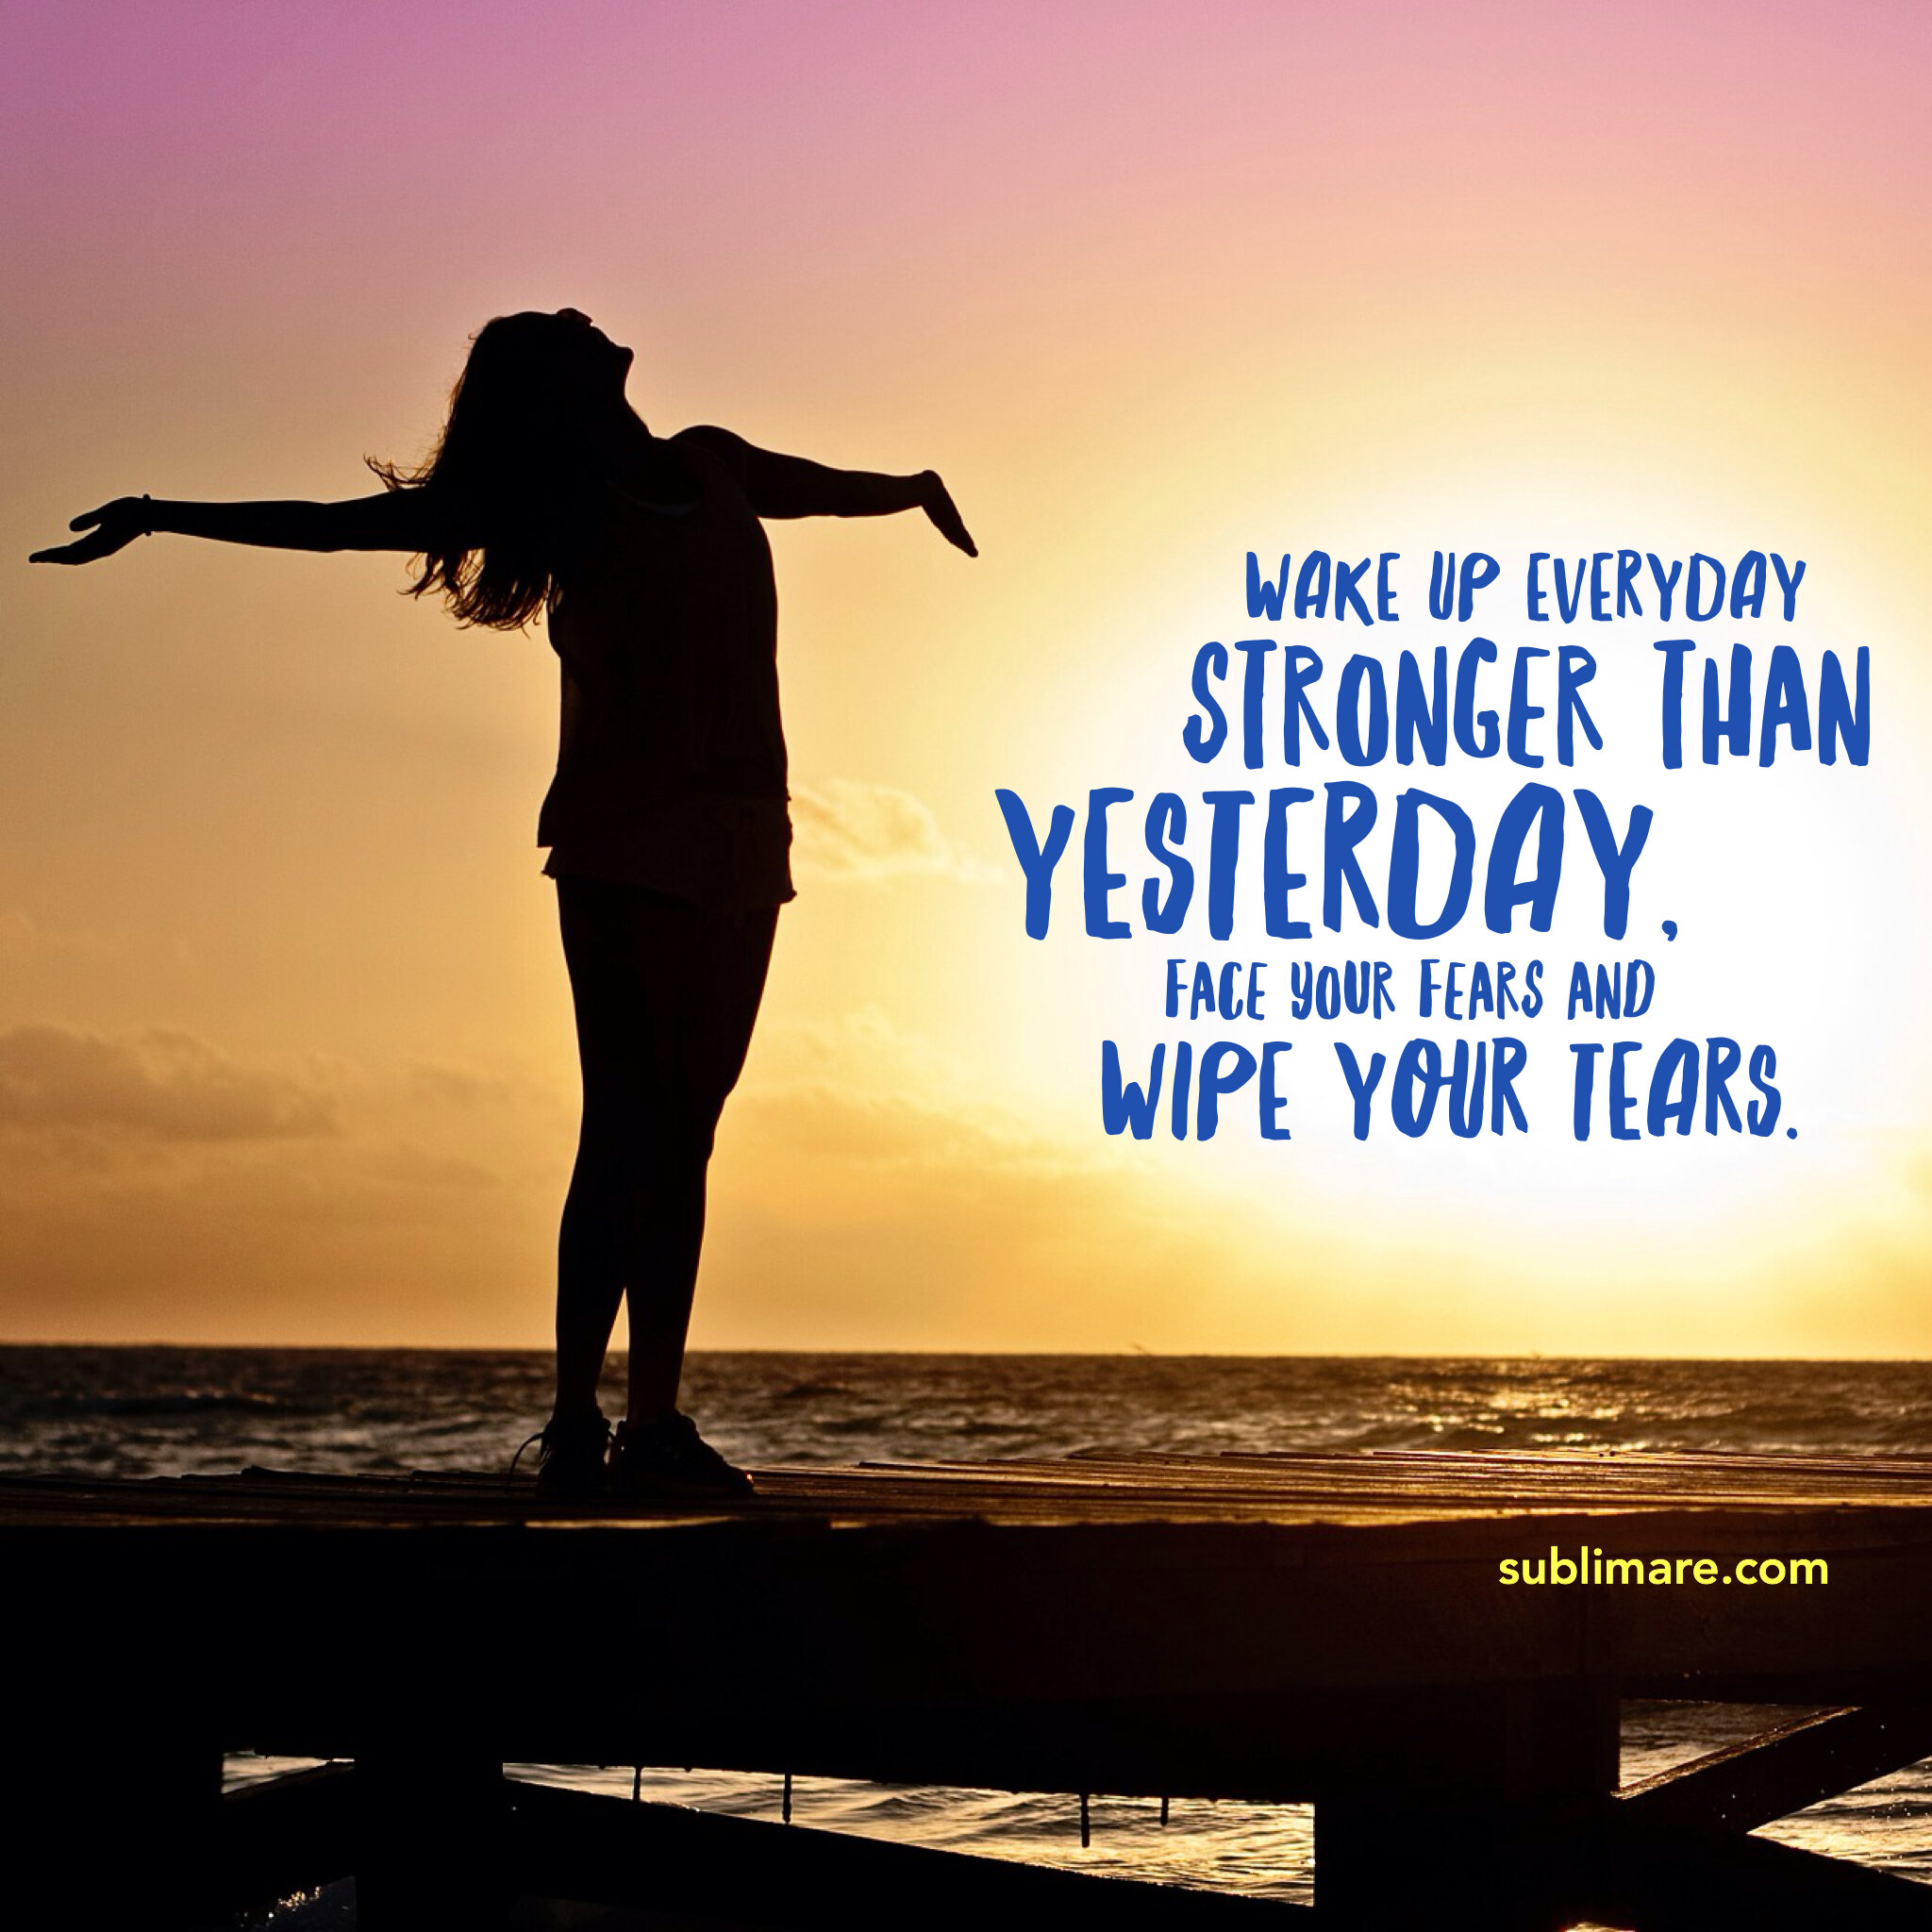 Wake up everyday stronger than yesterday, face your fears and wipe your tears. (TYGA)